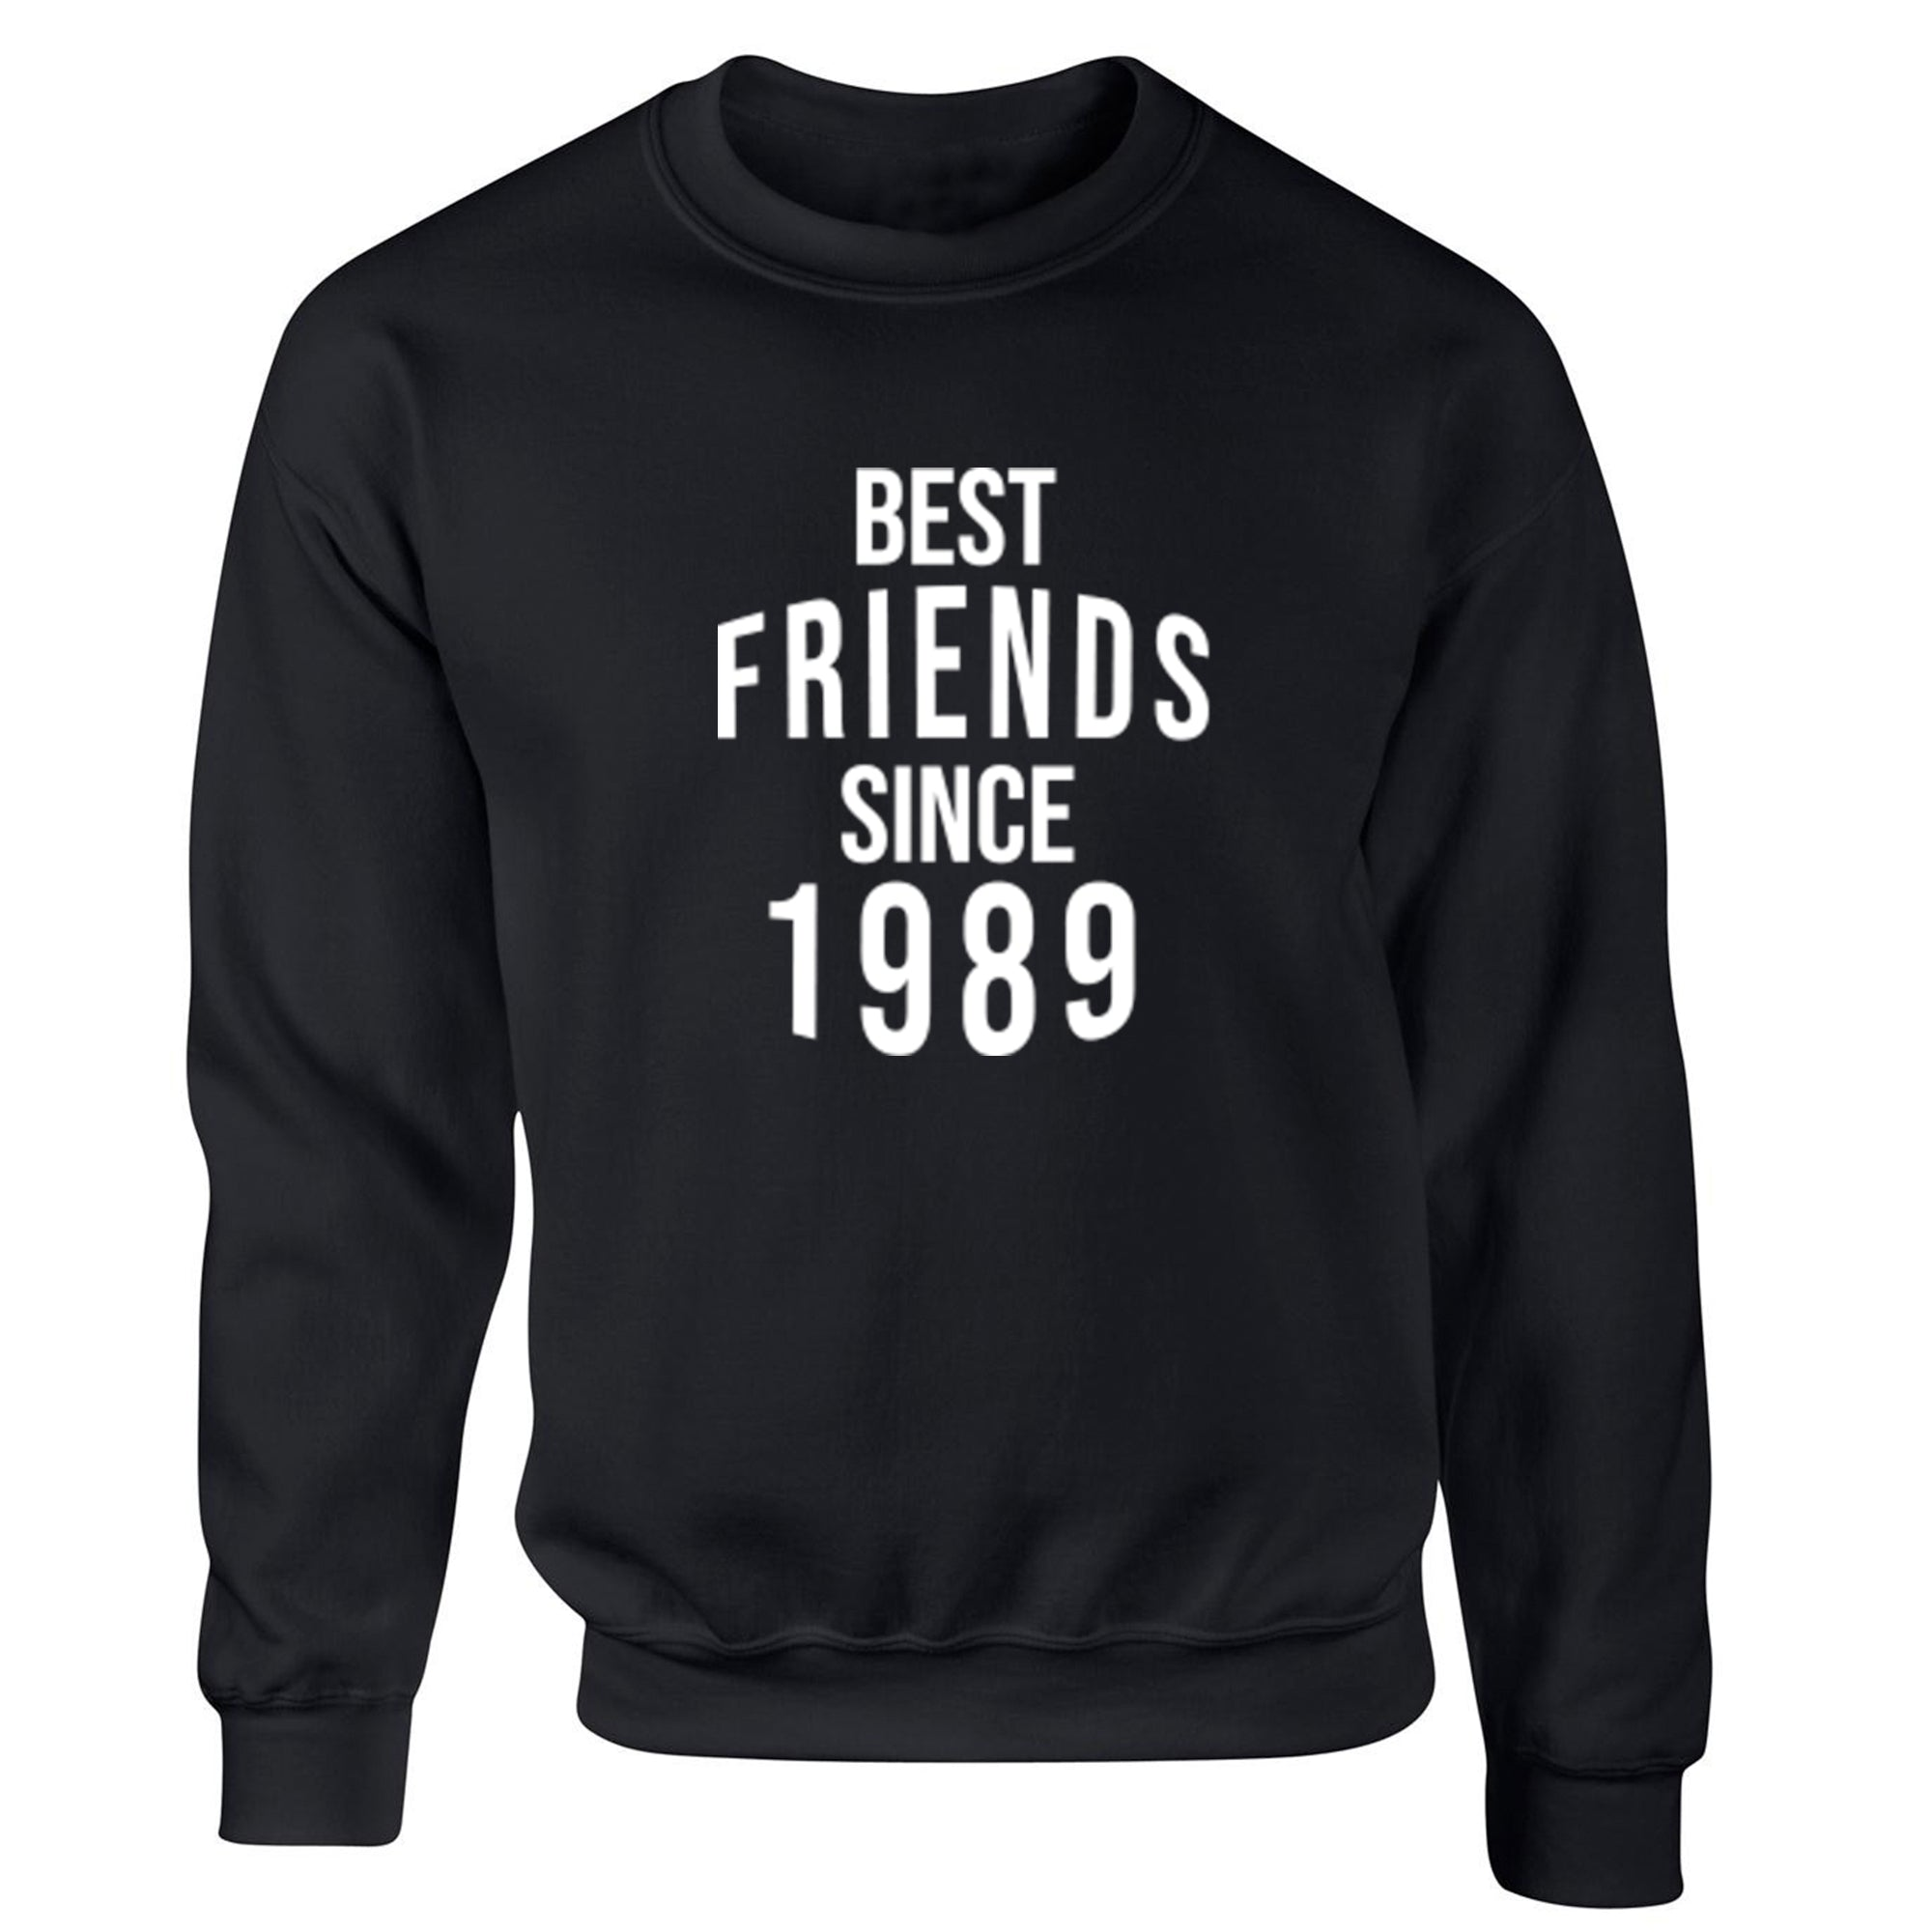 Best Friends Since 1989 Unisex Jumper S0568 - Illustrated Identity Ltd.